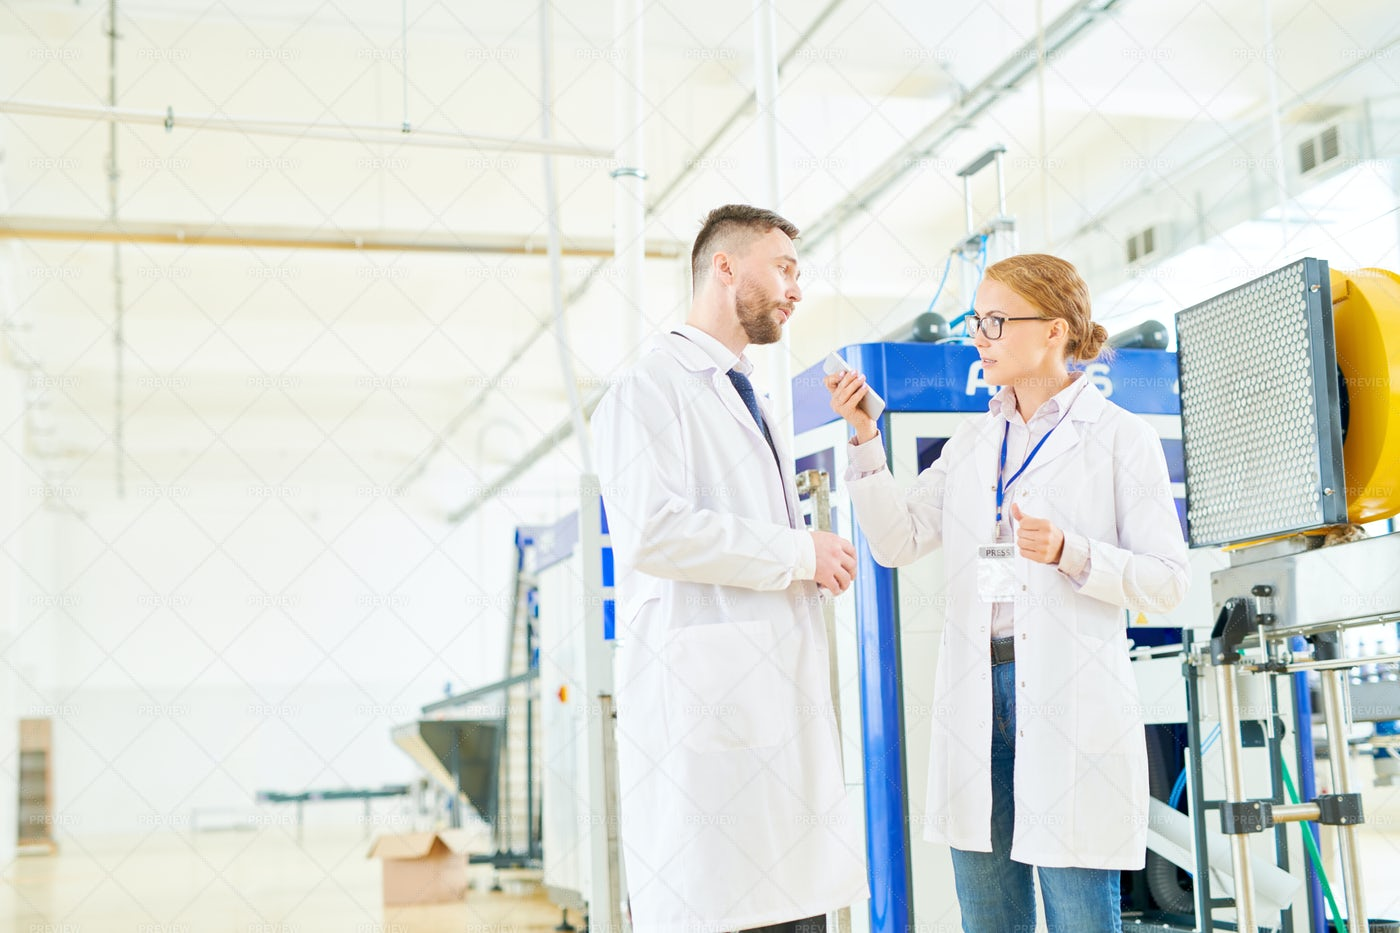 Interviewing Technologist Of Soy...: Stock Photos